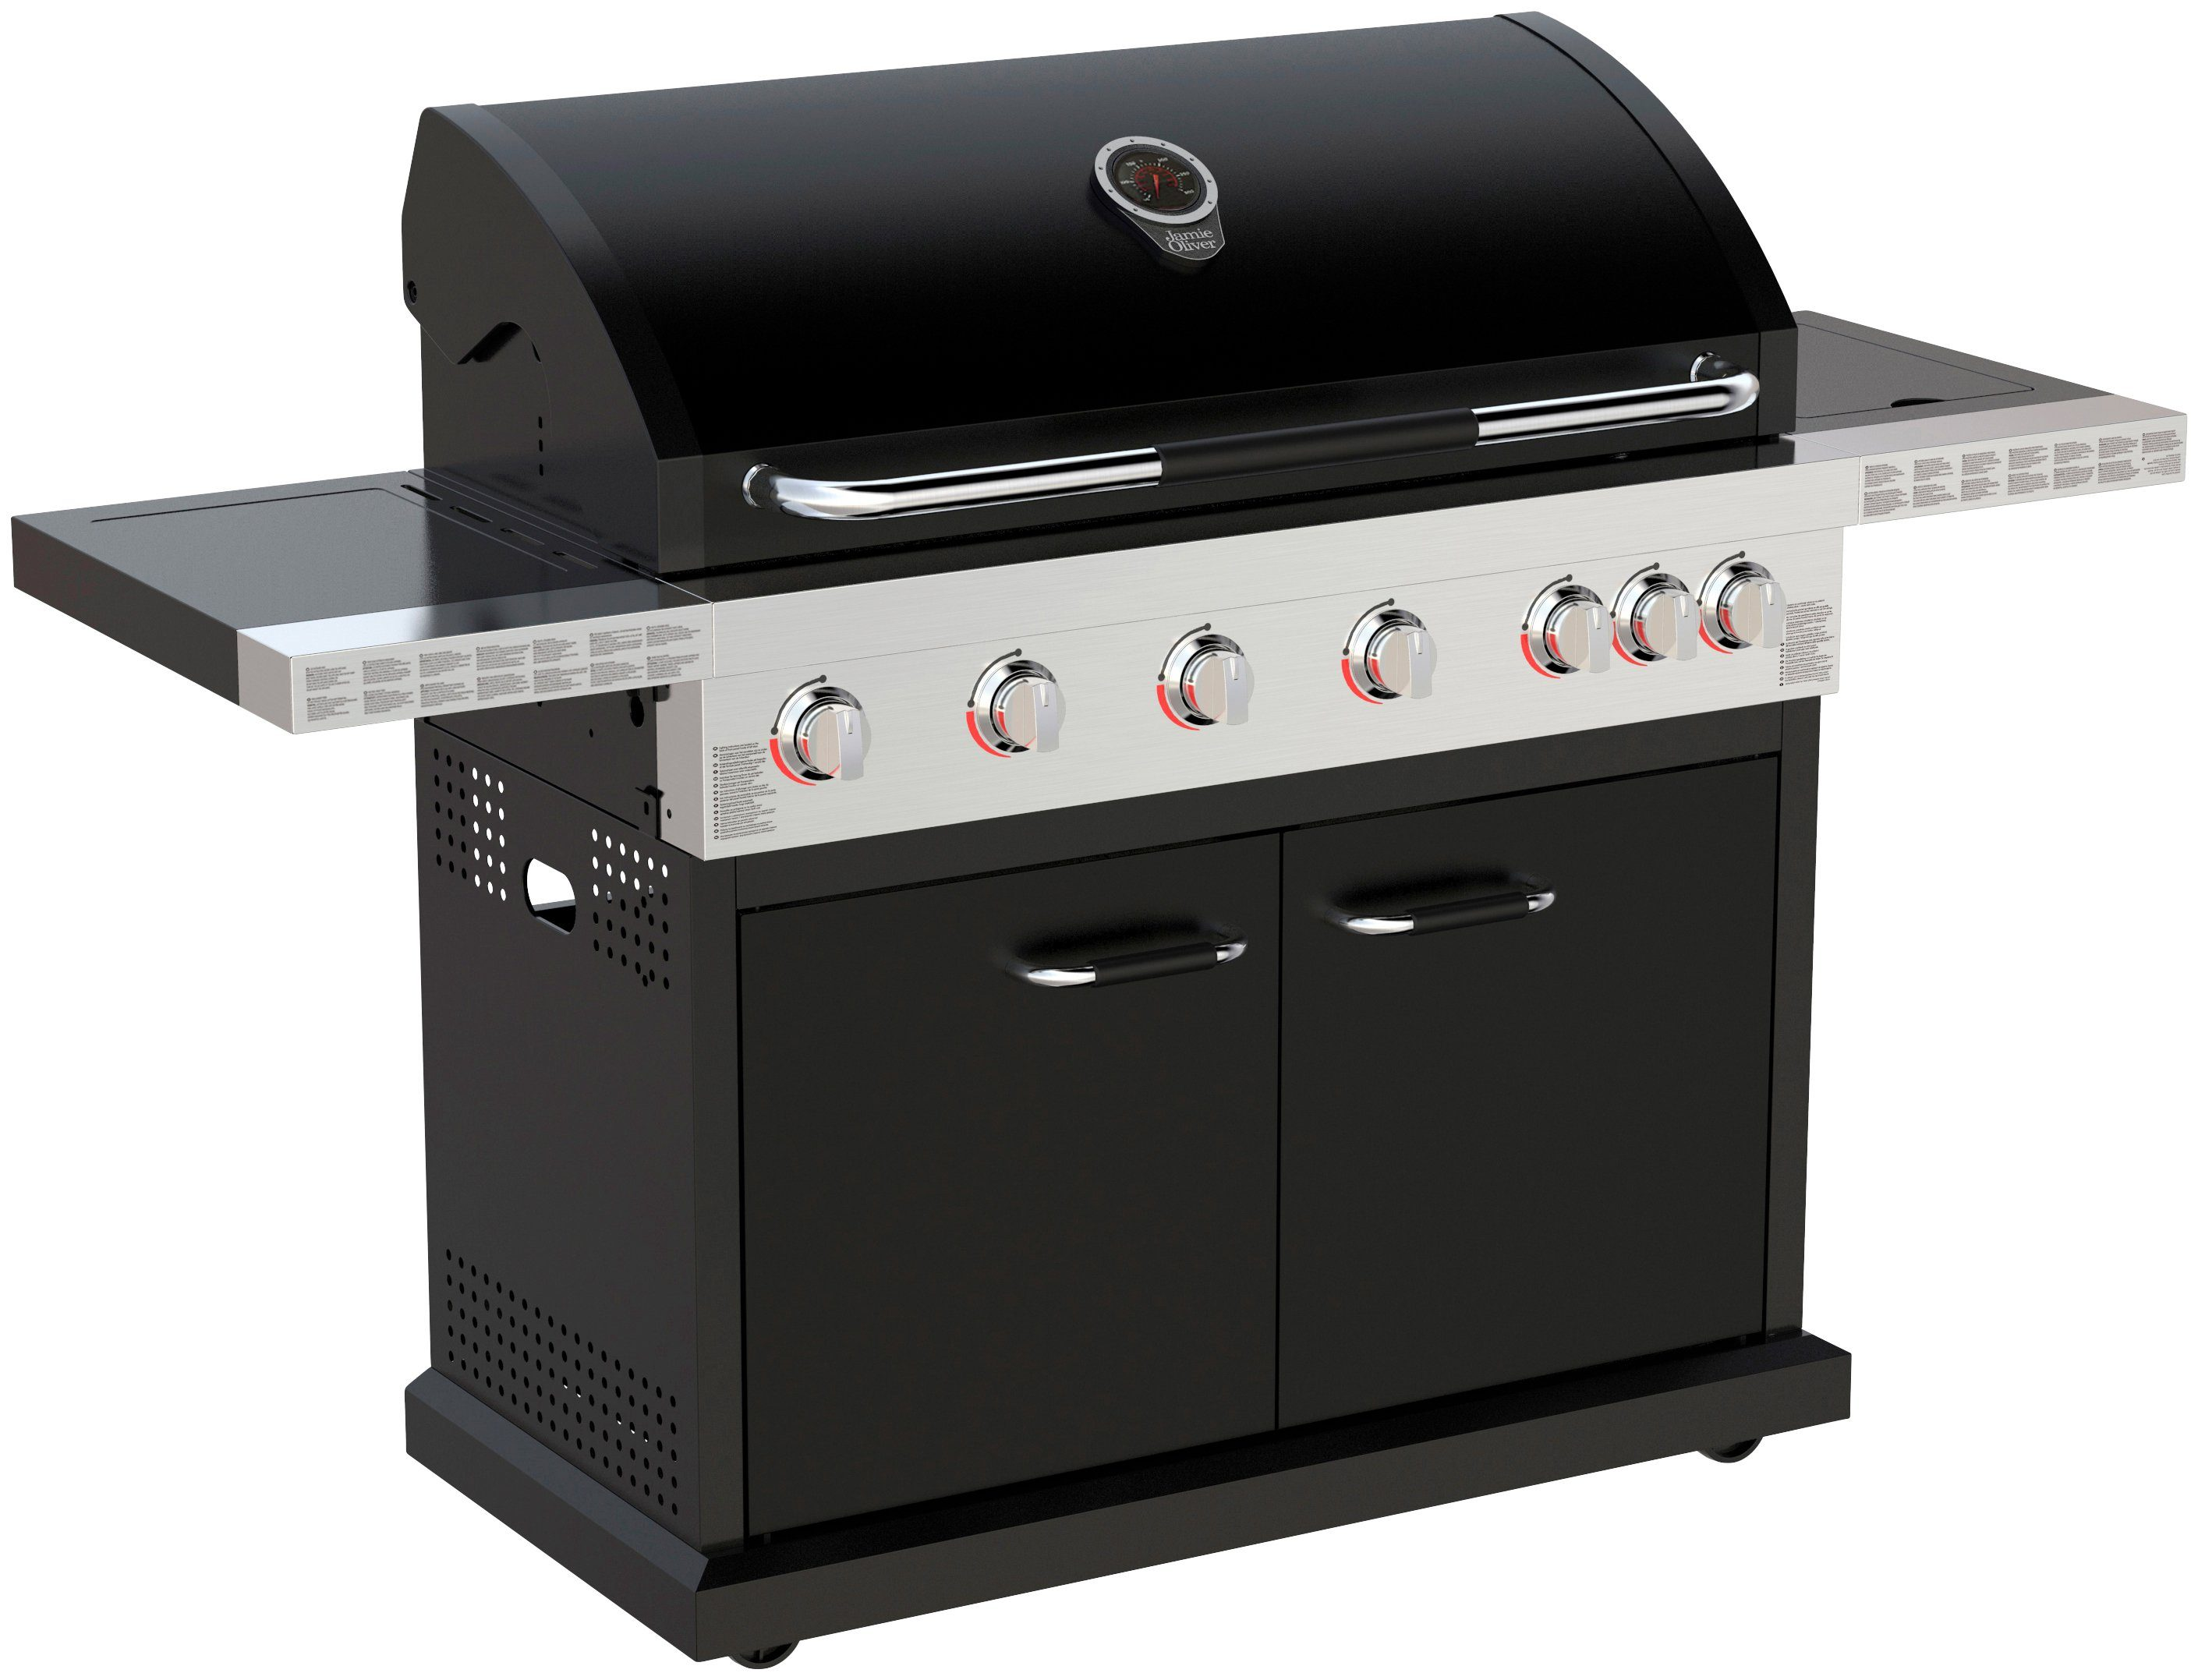 Enders Gasgrill Turbo Zone : Kansas black pro k turbo praxistest endersnews